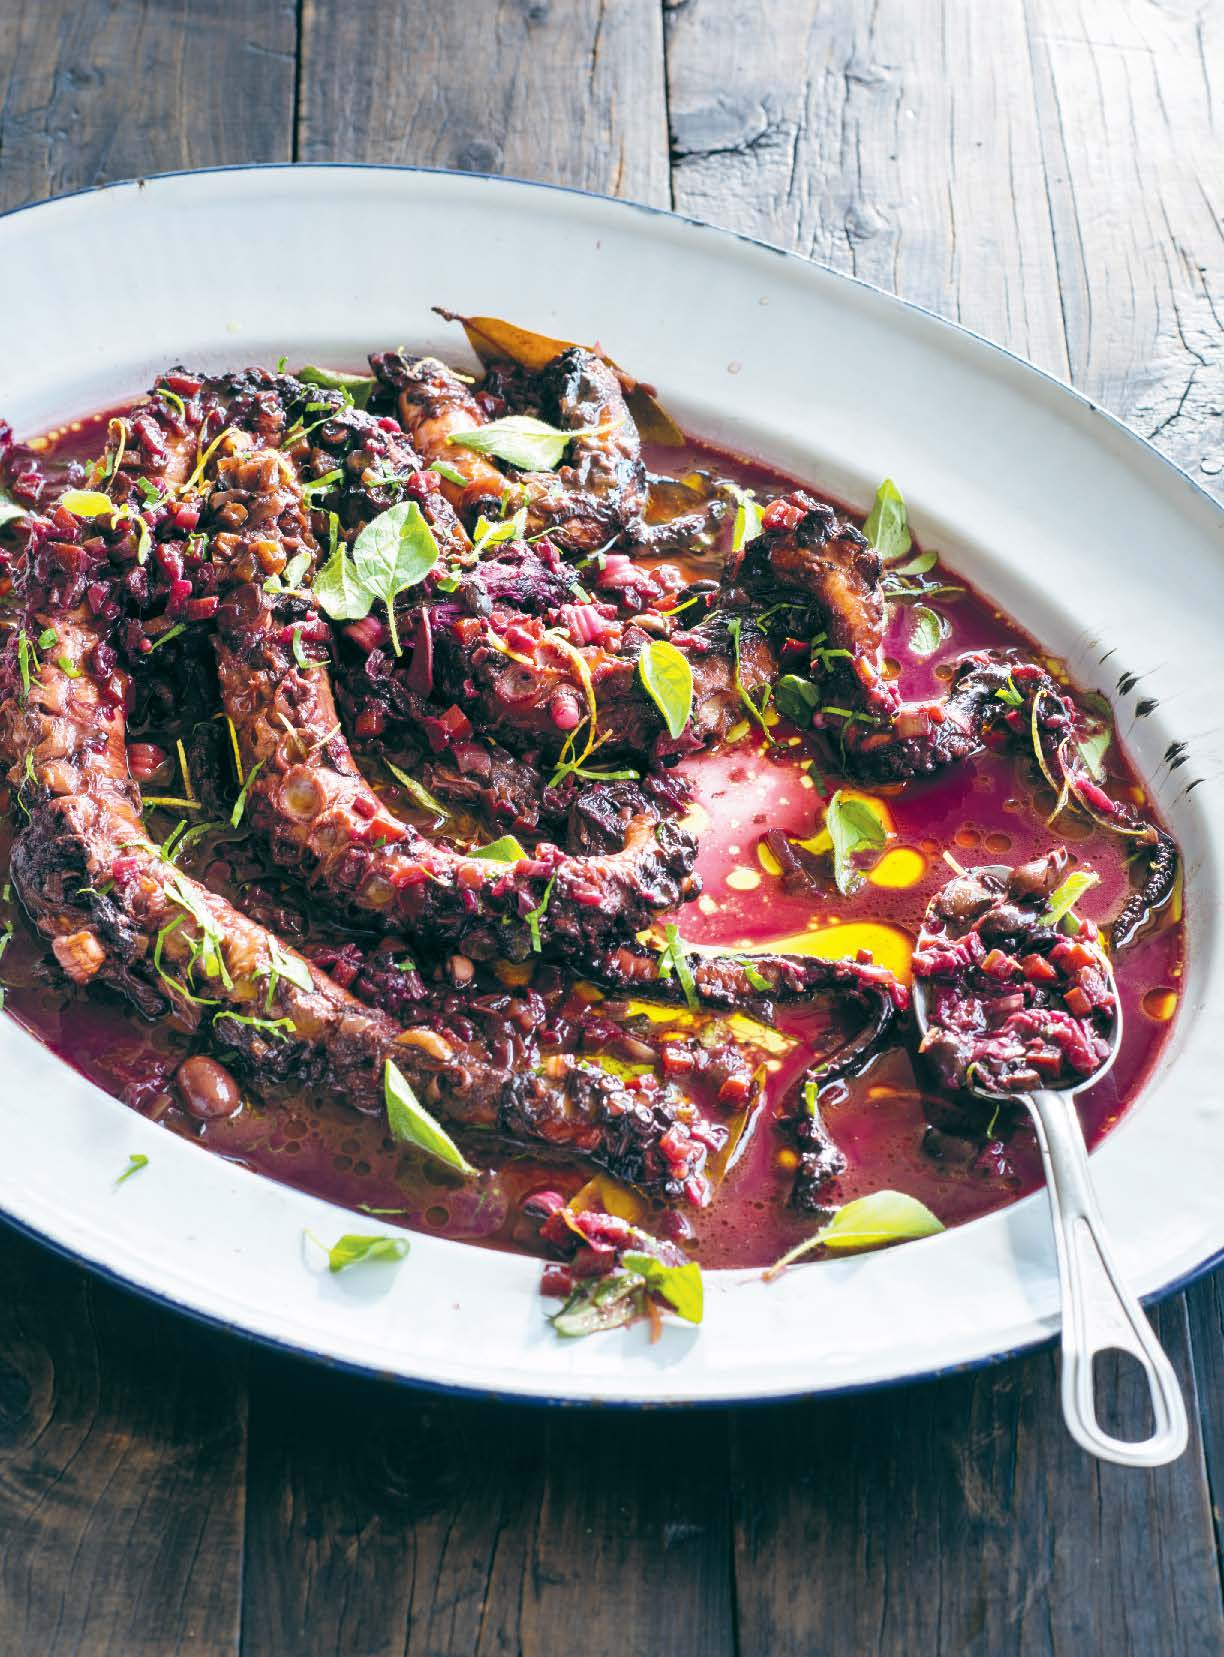 Octopus braised in red wine with lemon and oregano